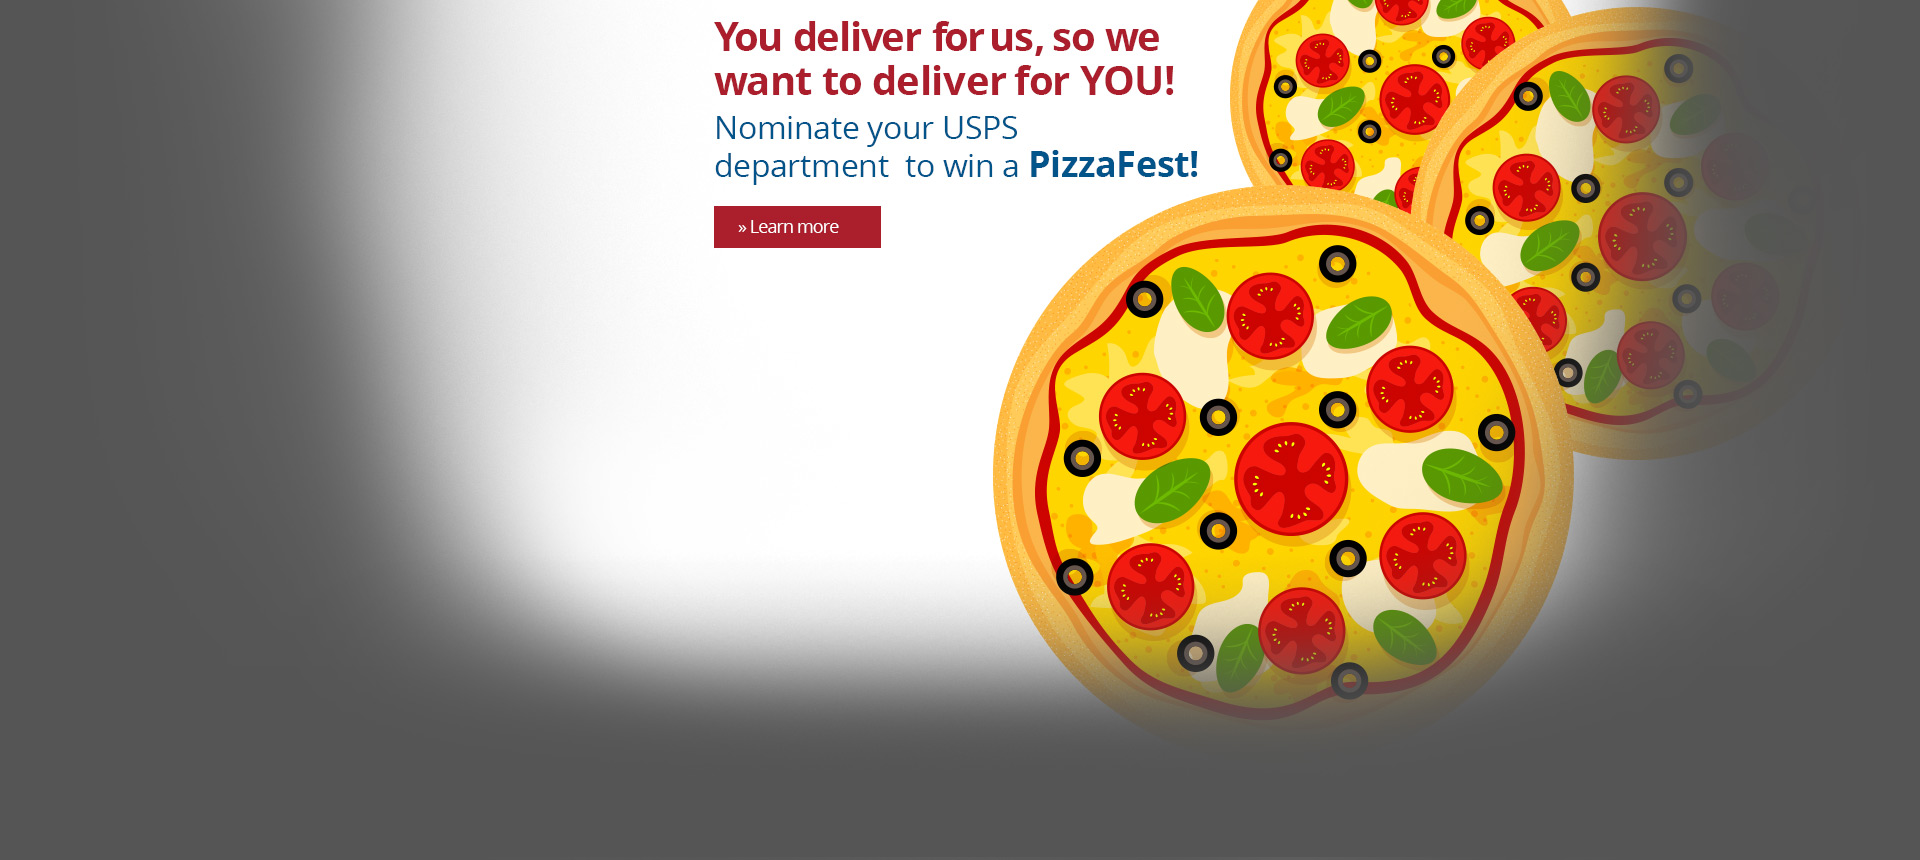 PizzaFest is coming to our essential USPS workers!